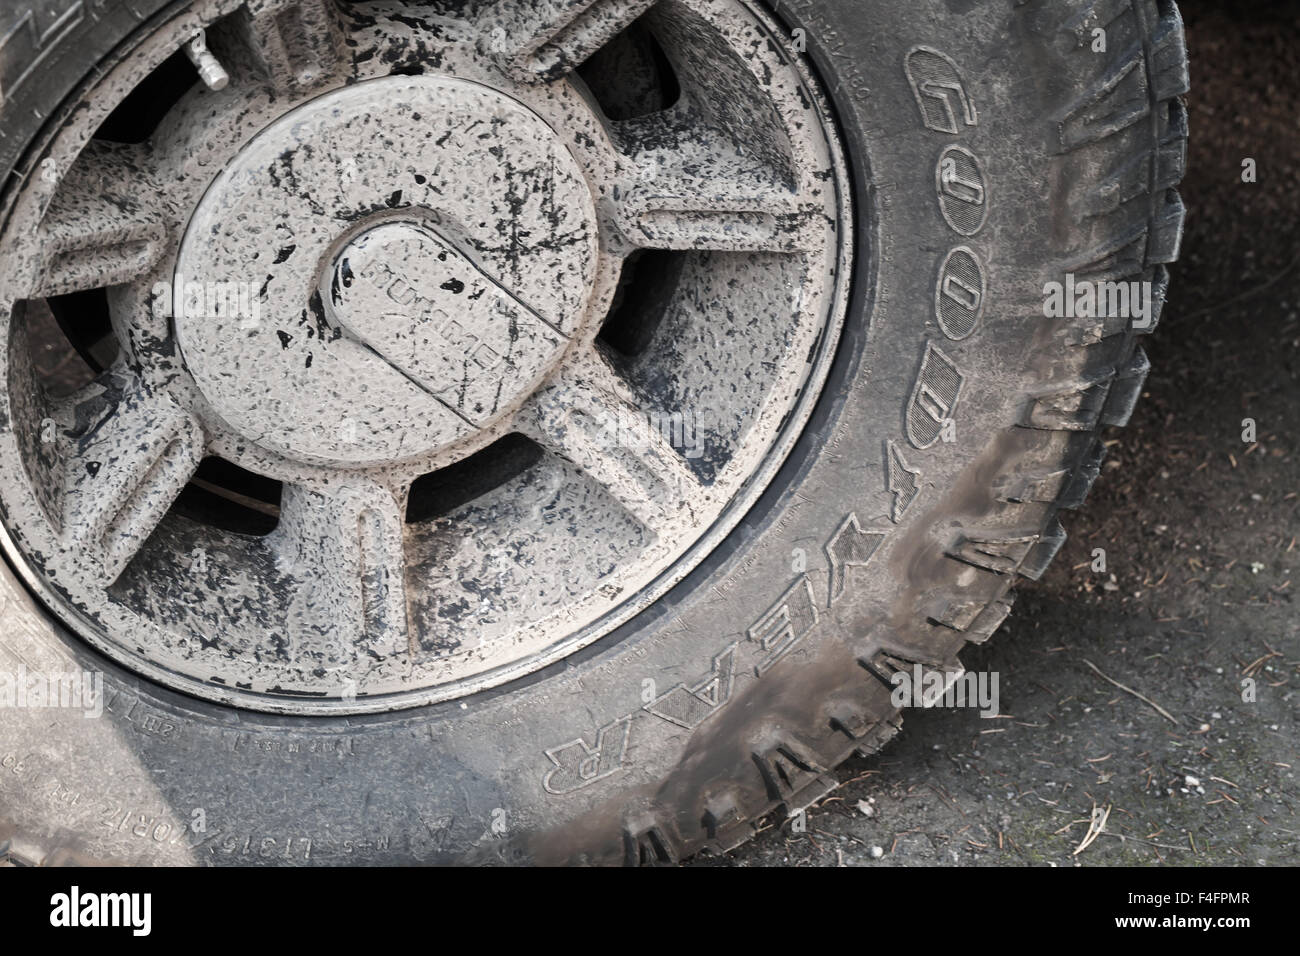 Saint-Petersburg, Russia - October 11, 2015: Dirty wheel with logotypes, Hummer H2 car fragment - Stock Image